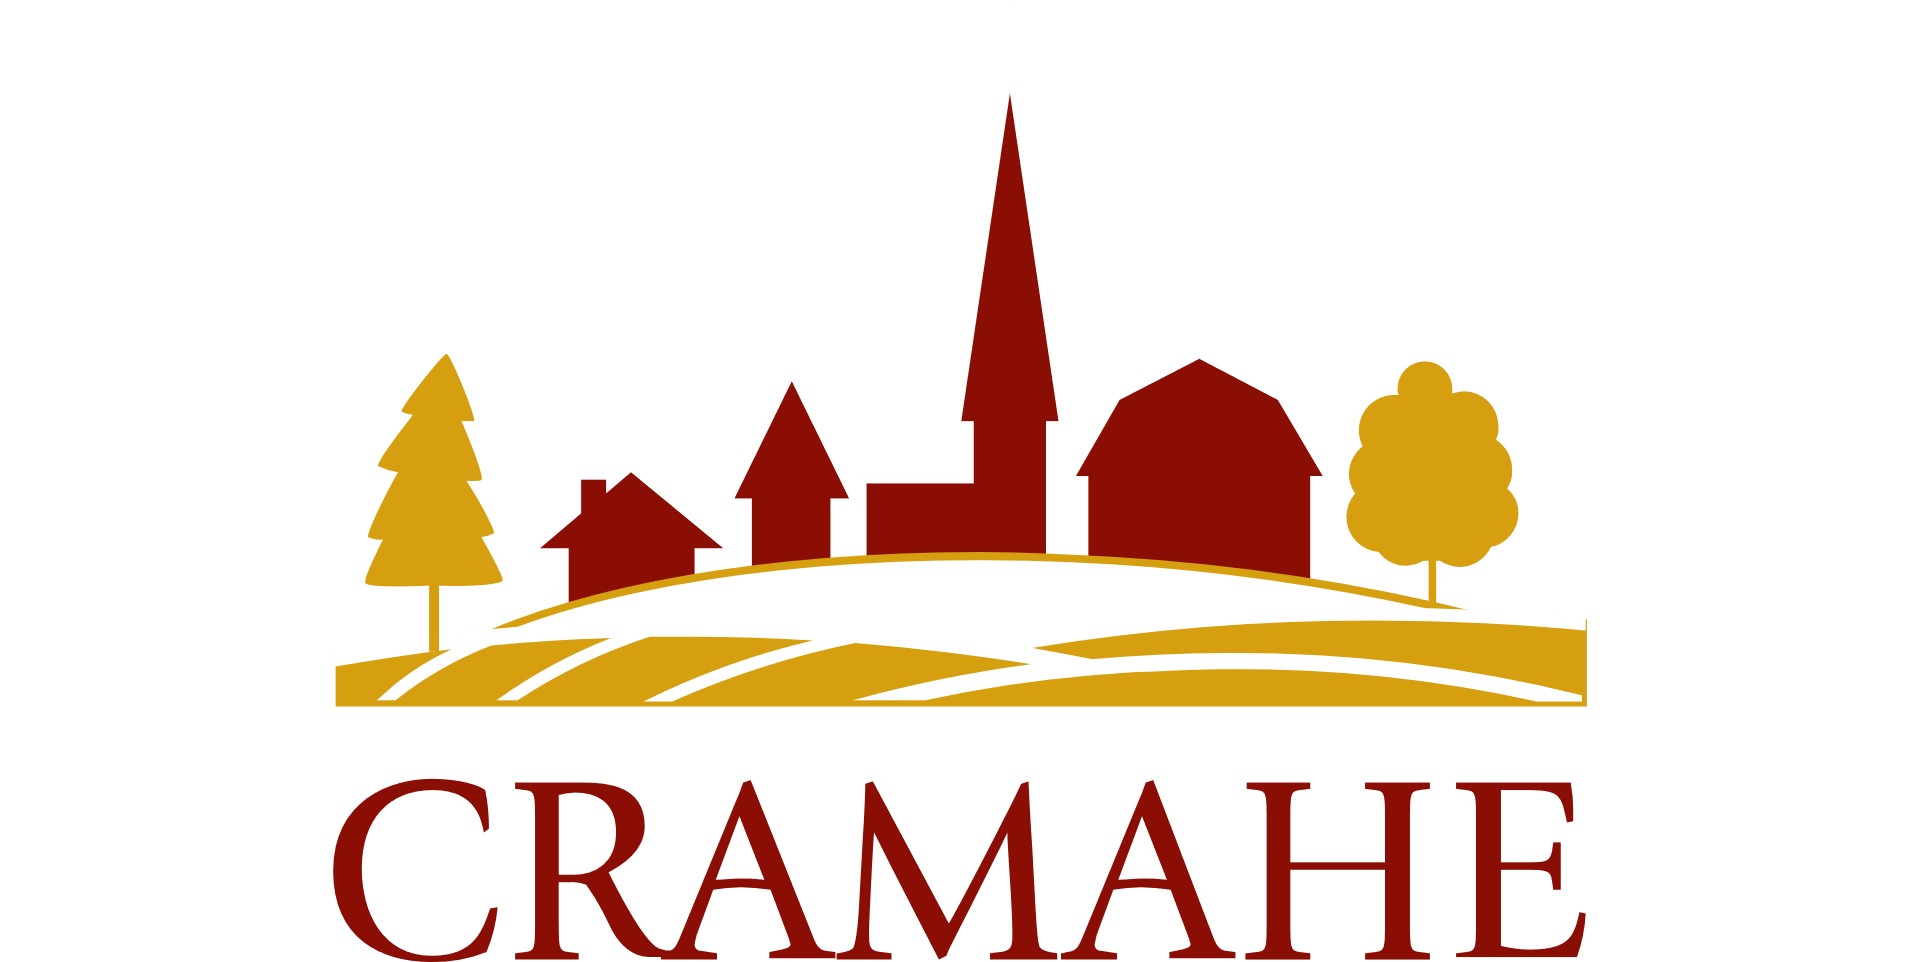 Let's Talk Cramahe